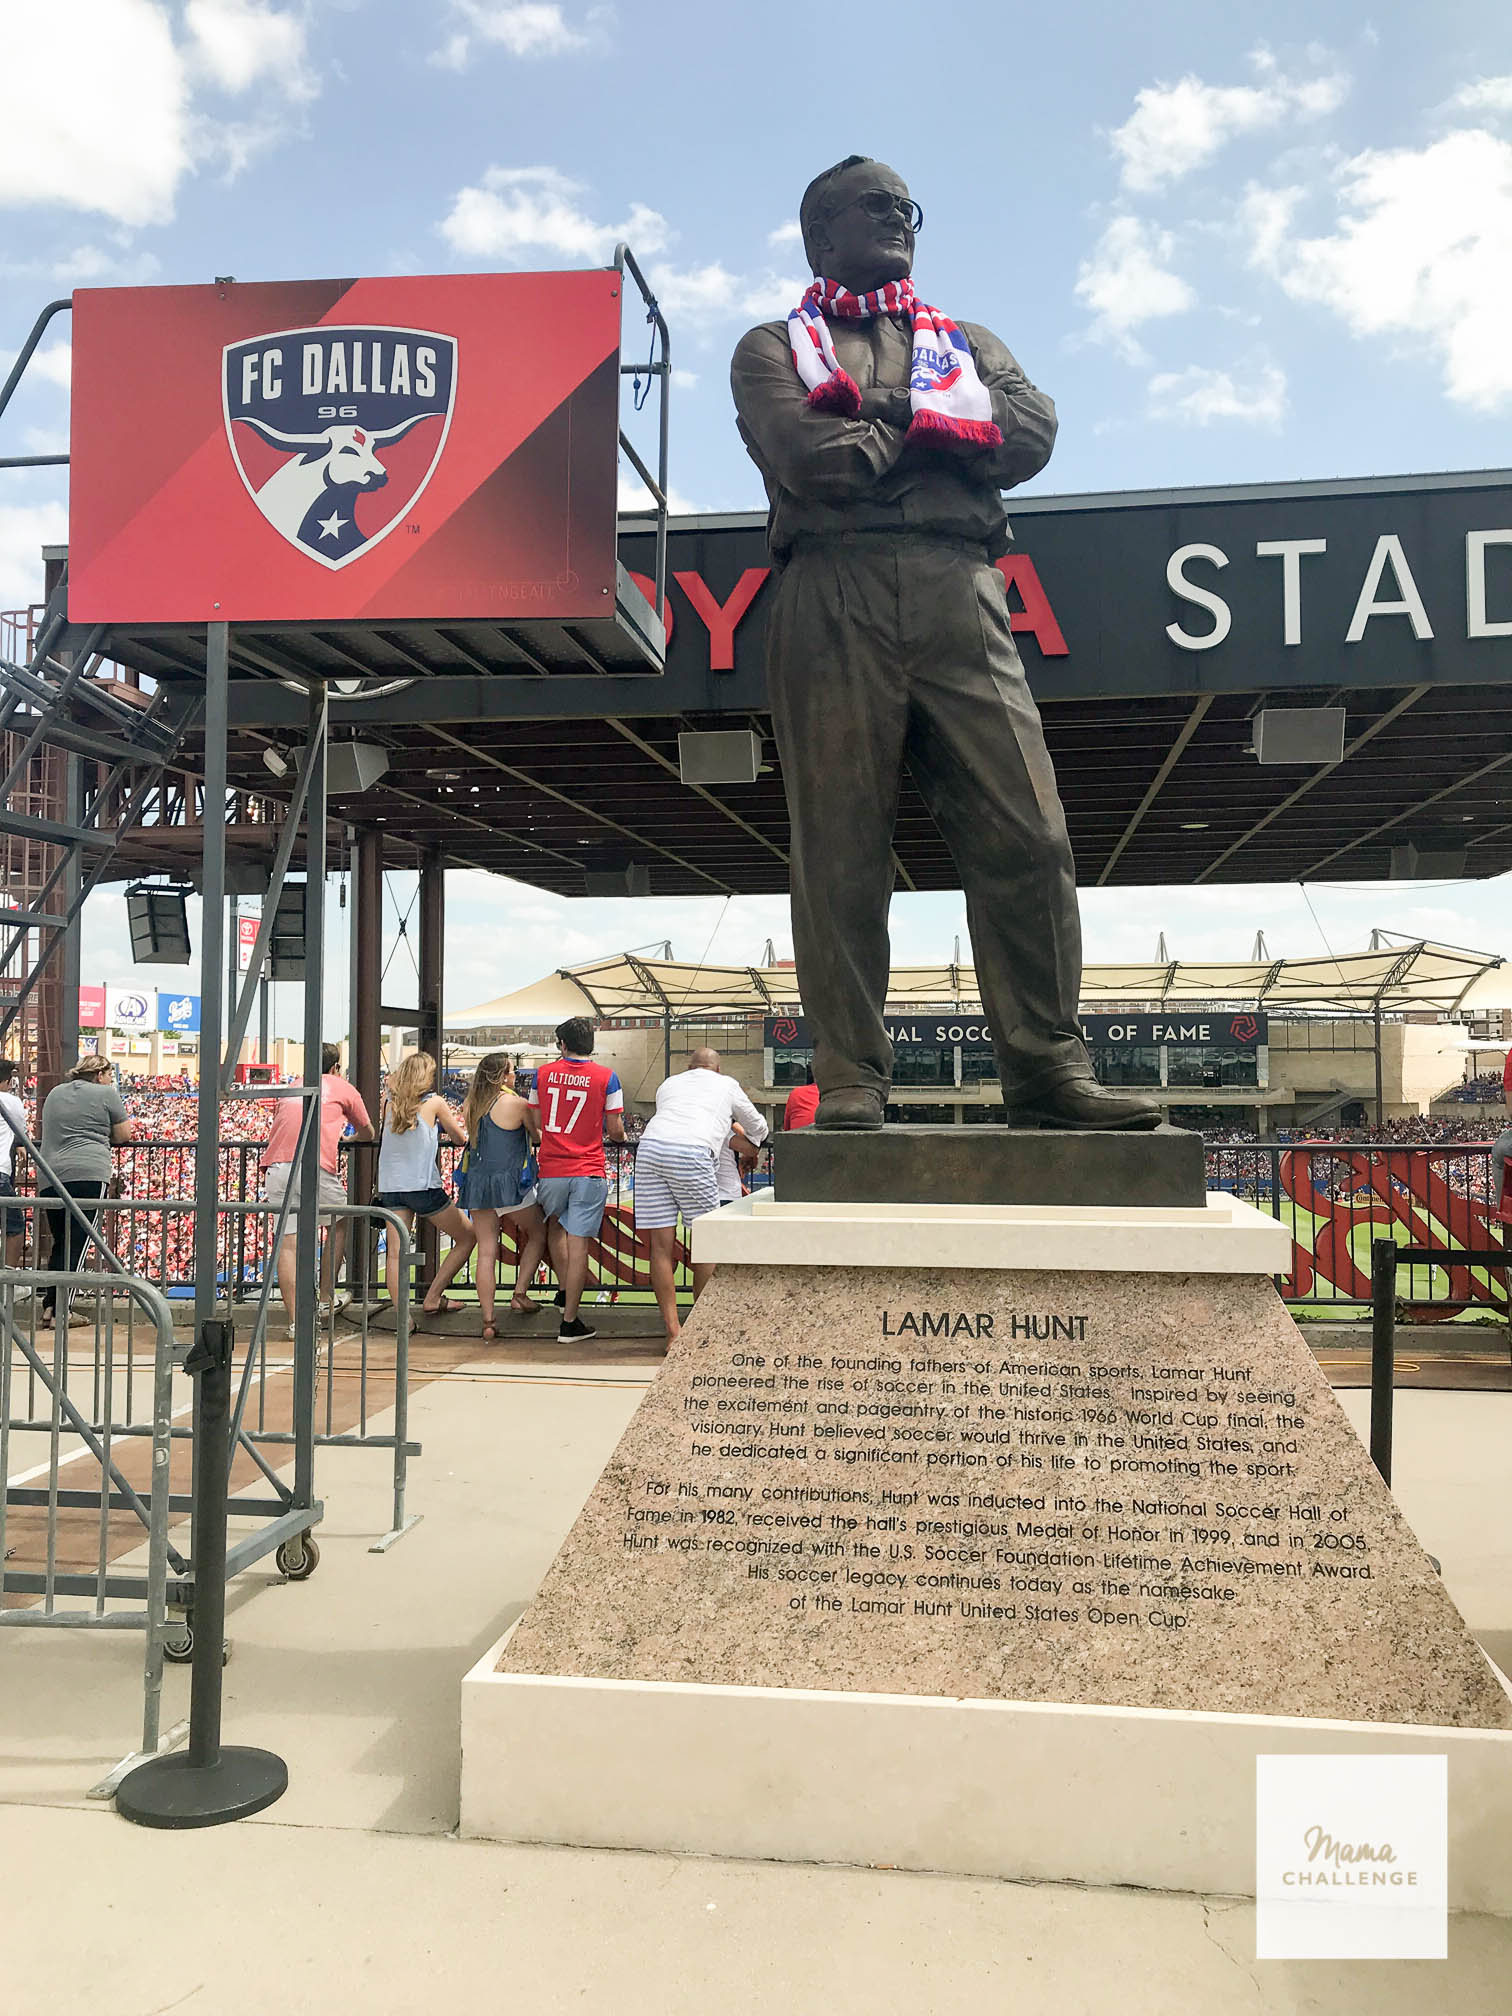 FCDallas at Toyota Stadium